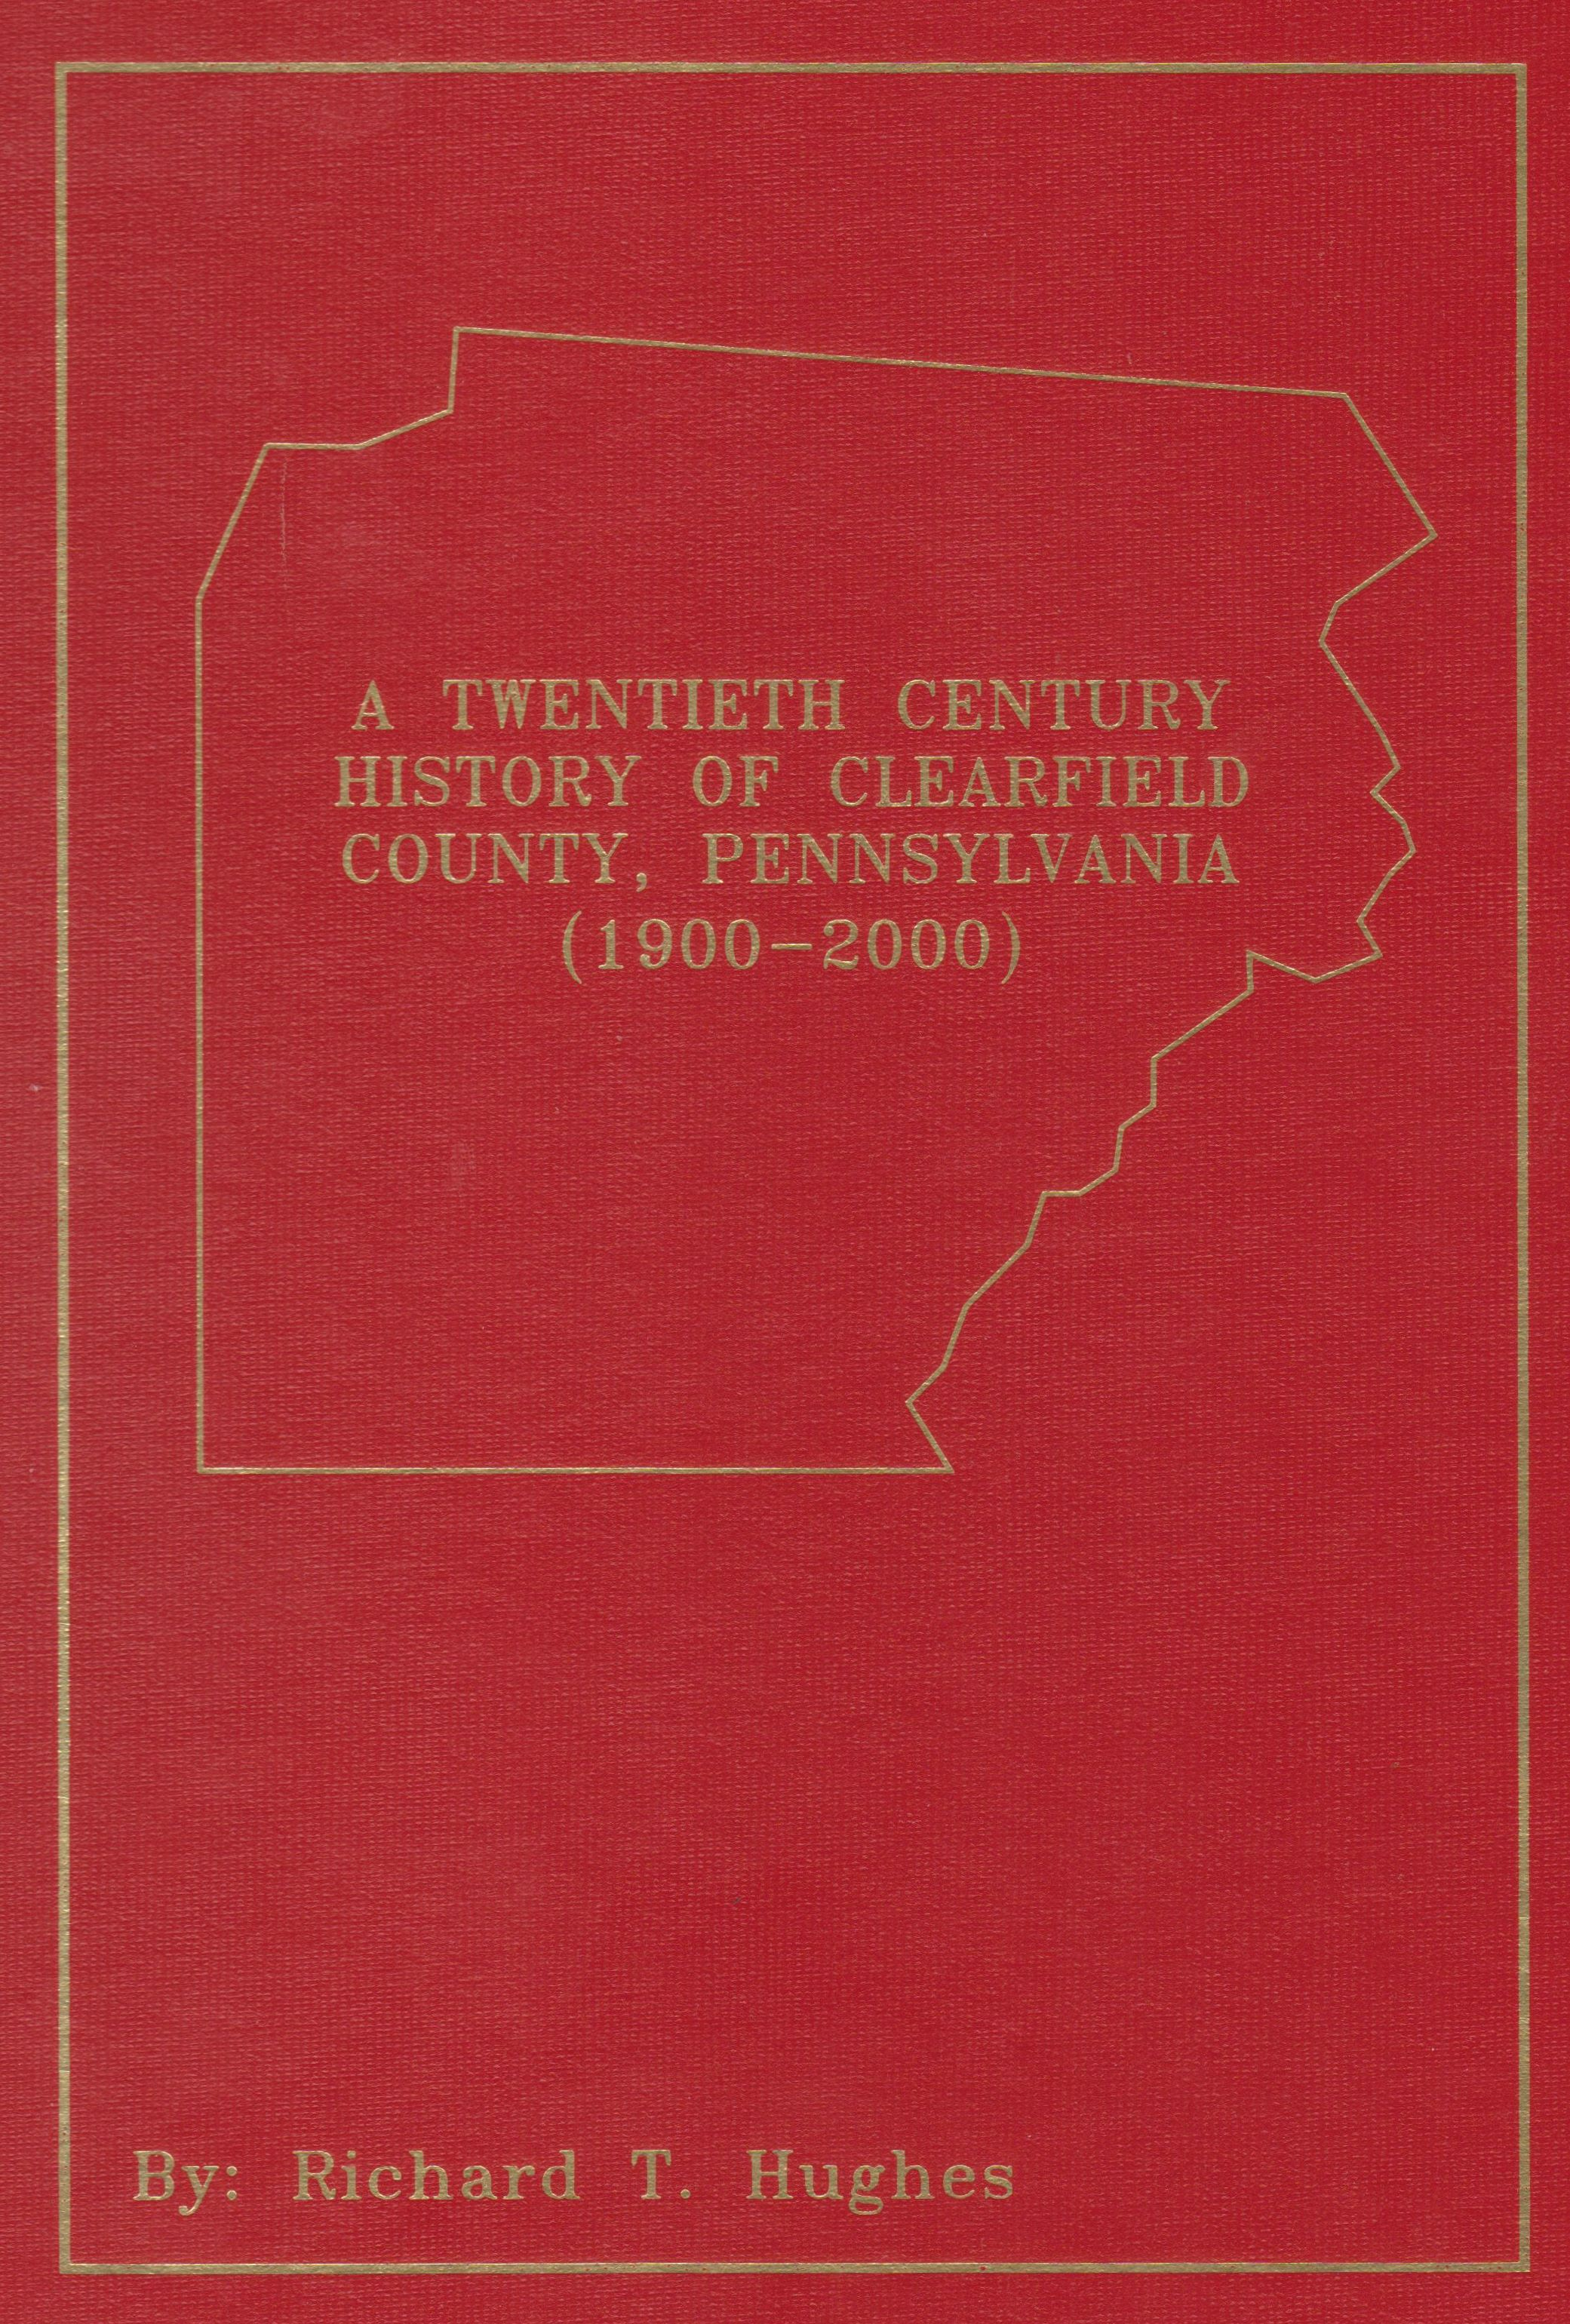 A Twentieth Century History of Clearfield County, PA